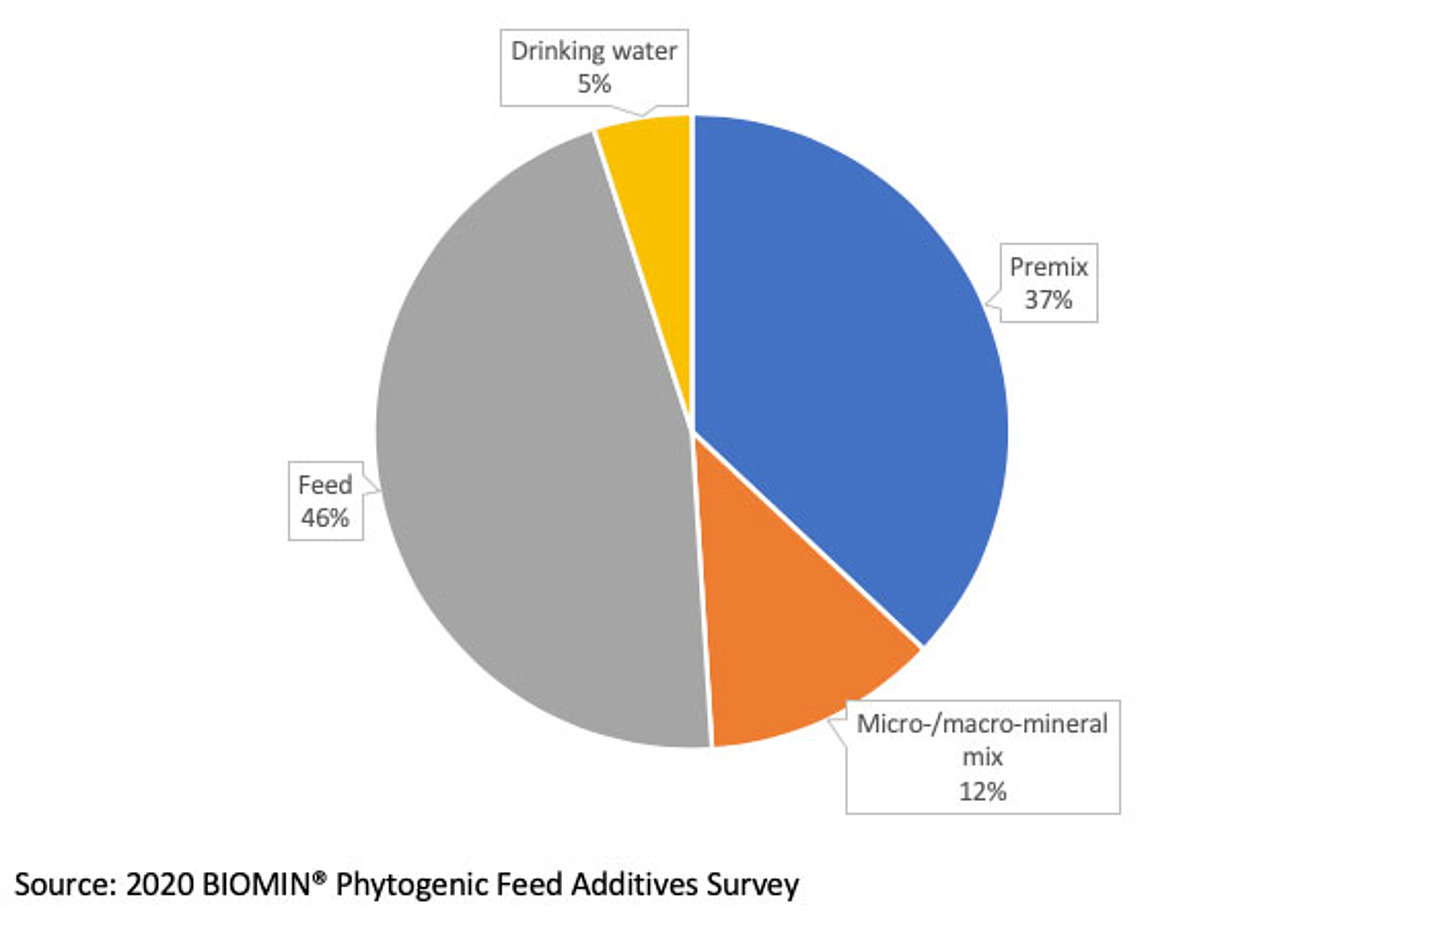 Nearly all PFAs are applied in feed or premixes according to respondents of the 2020 BIOMIN PFA survey.